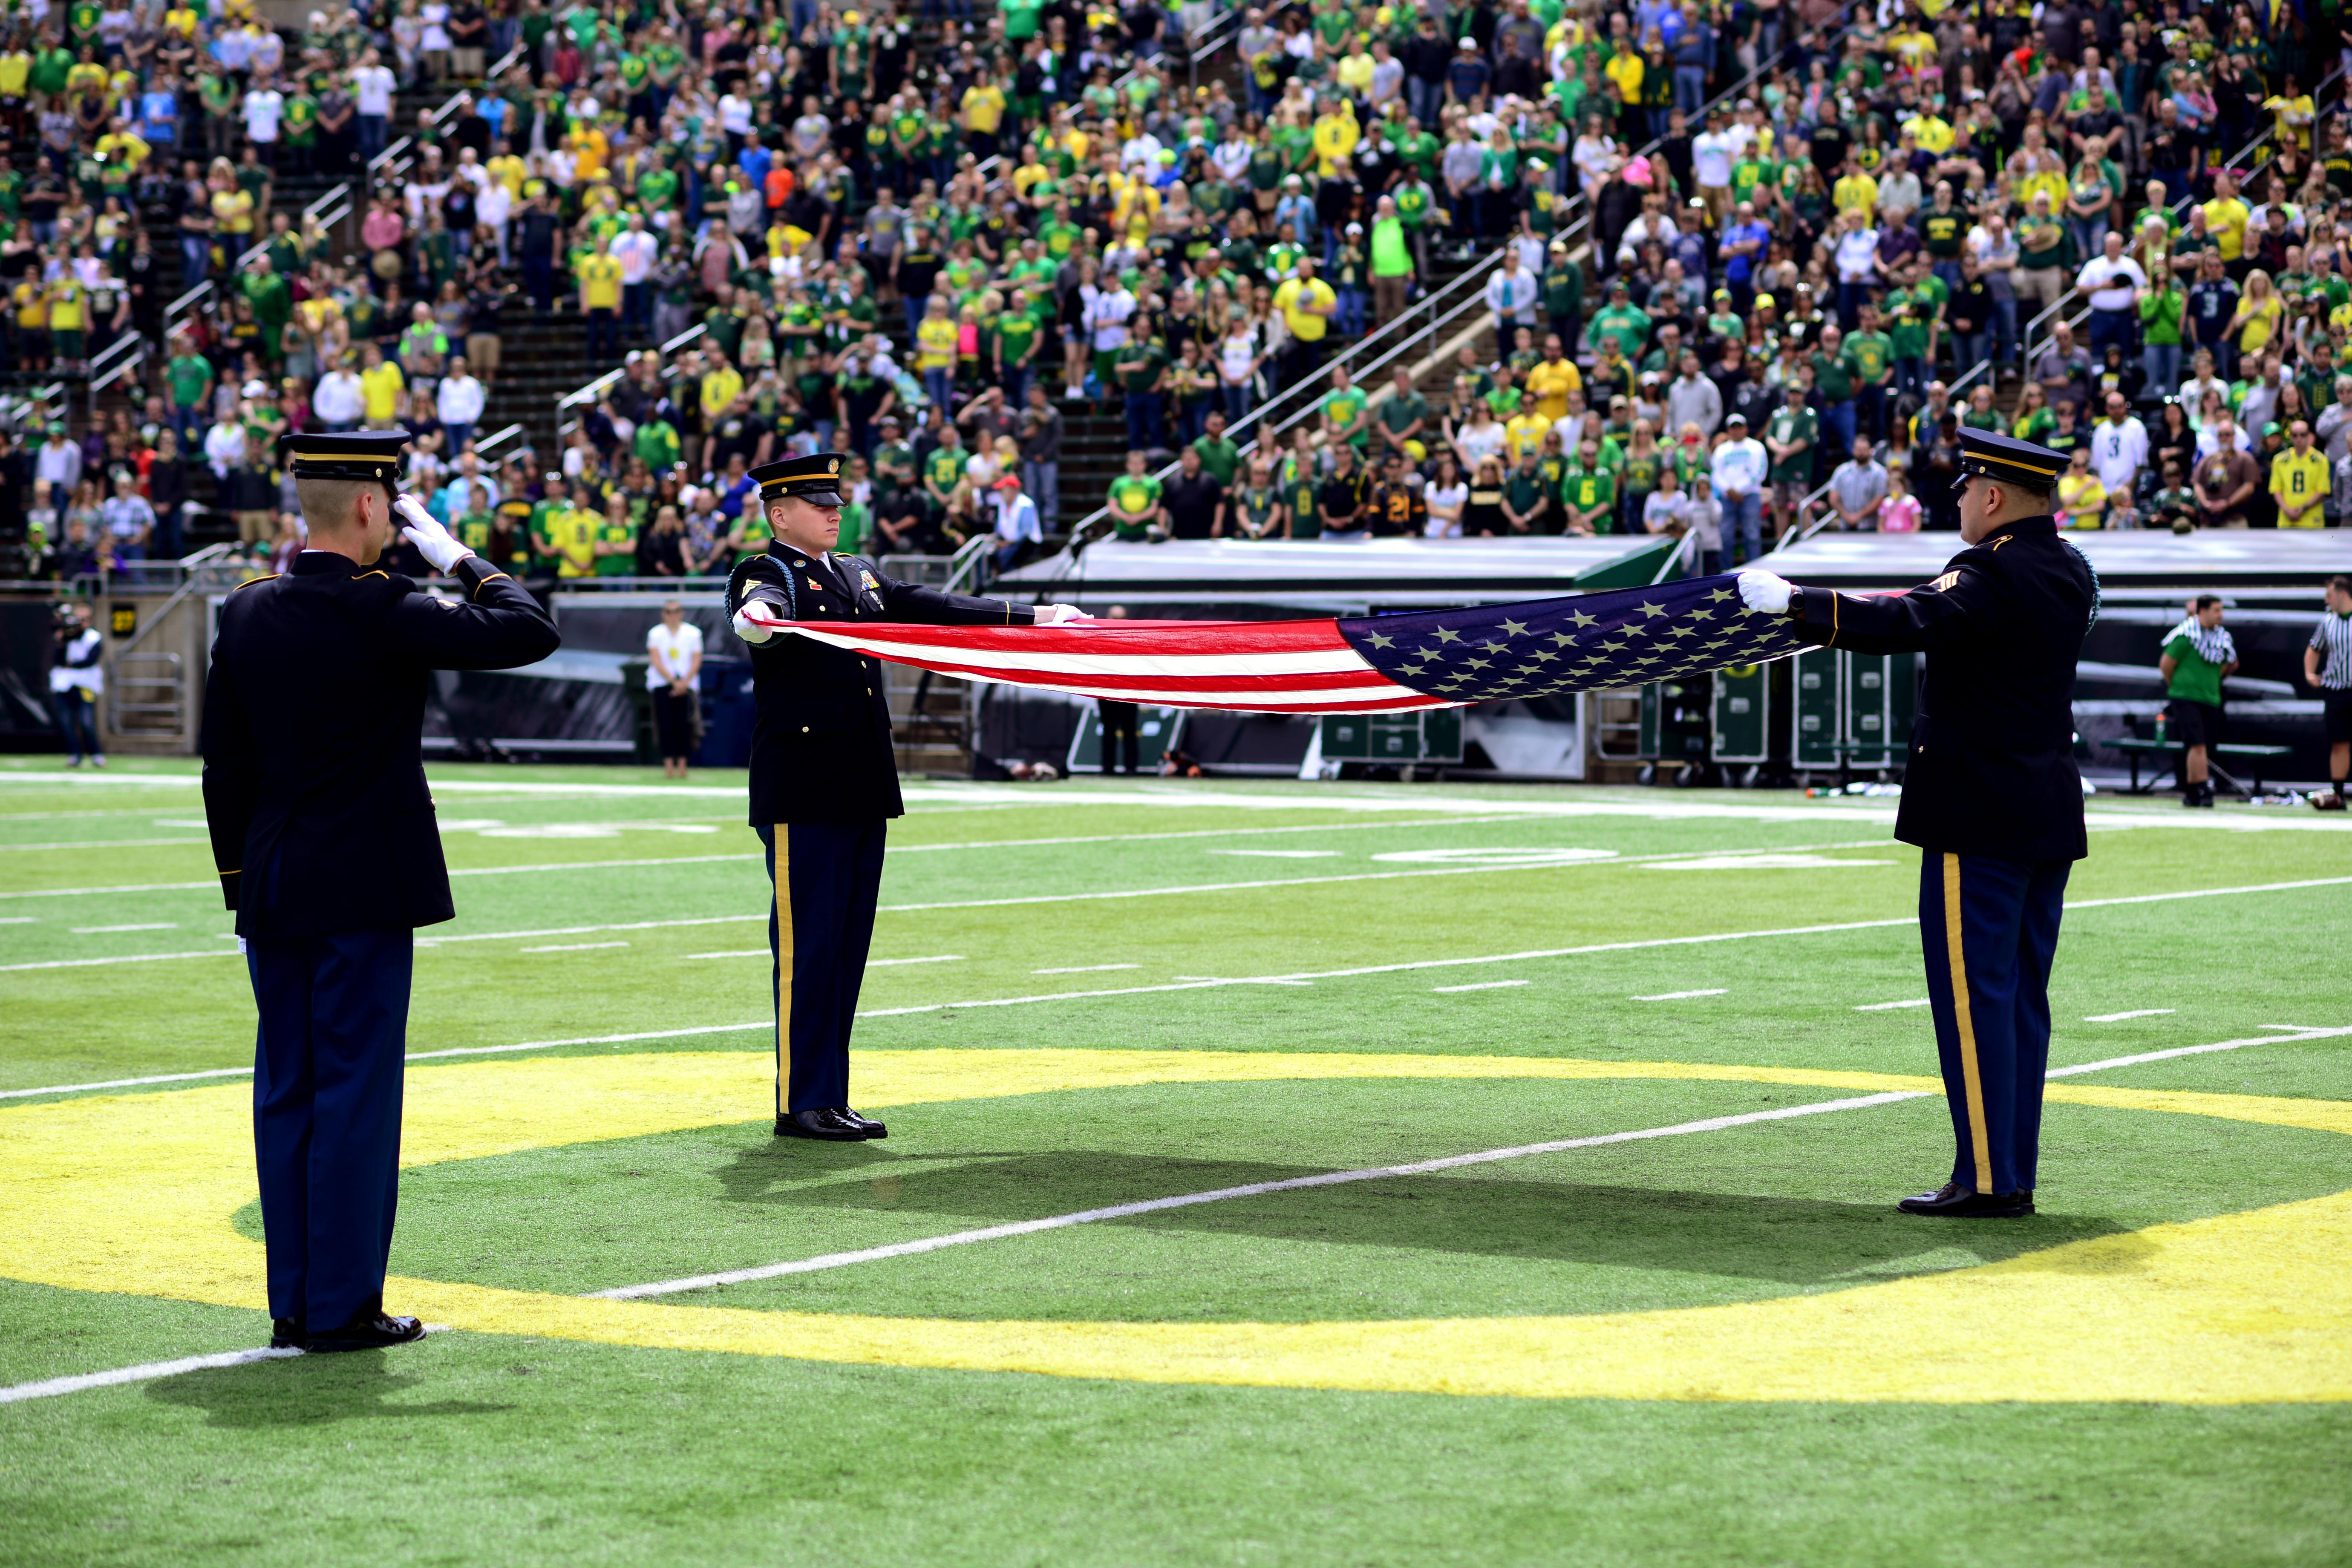 Oregon National Guard Soldiers perform a flag folding ceremony in honor of missing and fallen service members during half time at the University of Oregon Spring Game, April 29, 2017, at Autzen Stadium in Eugene, Oregon. Members of the Oregon National Guard, along with Veterans from every branch of service, participated in Military Appreciation Day activities during the game. (Photo by Sgt. 1st Class April Davis, Oregon Military Department Public Affairs)